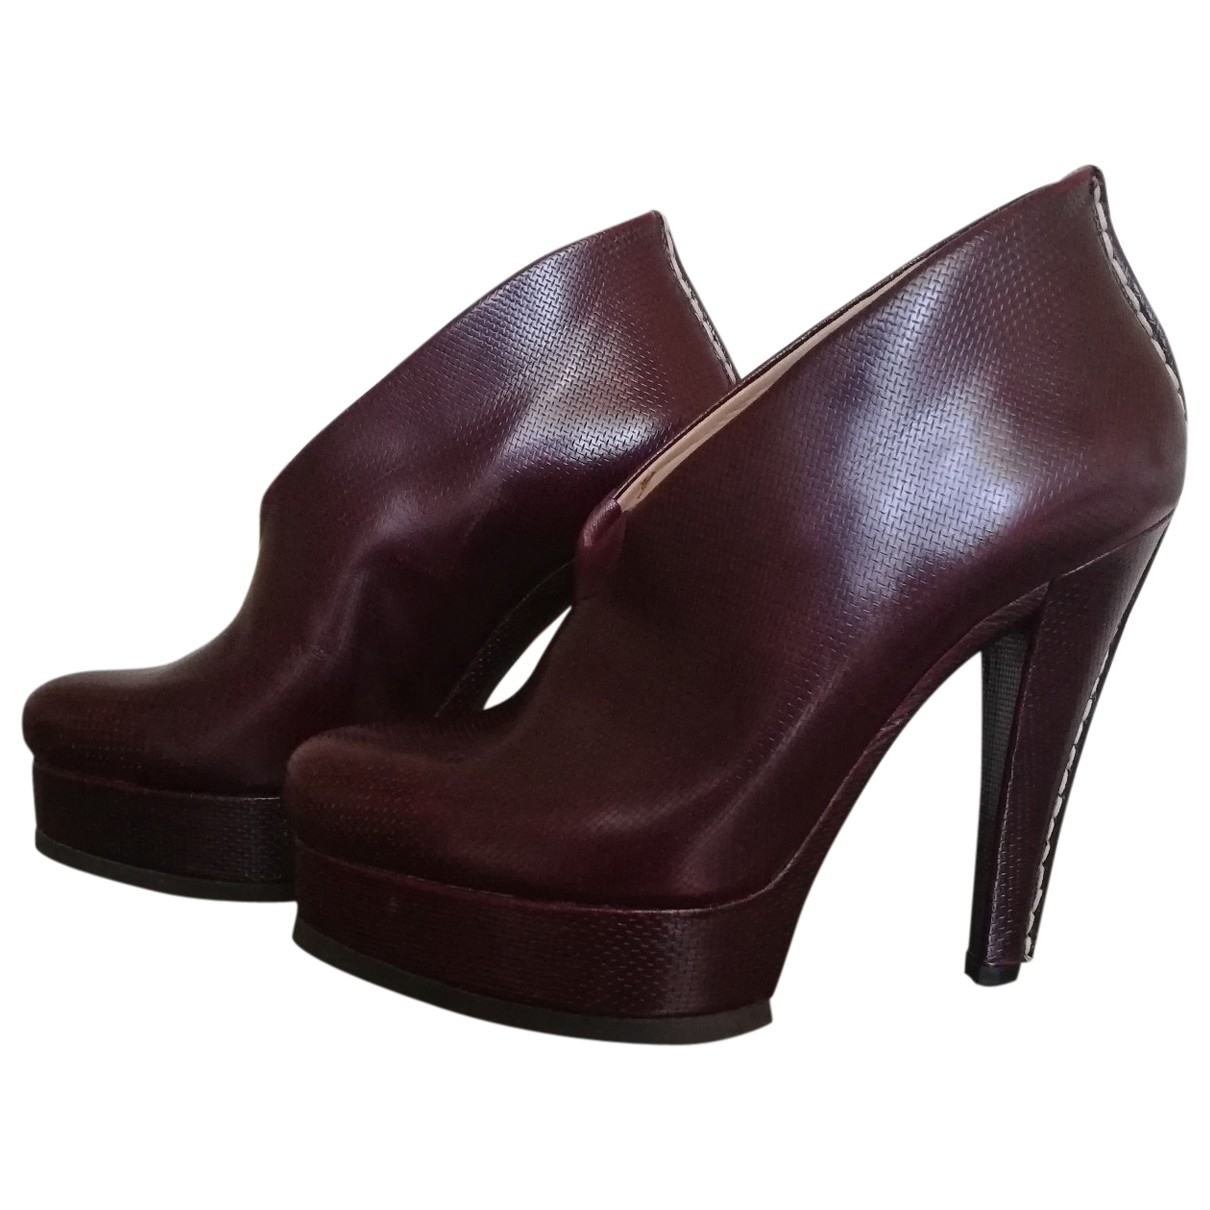 Jil Sander \N Burgundy Leather Heels for Women 37 EU